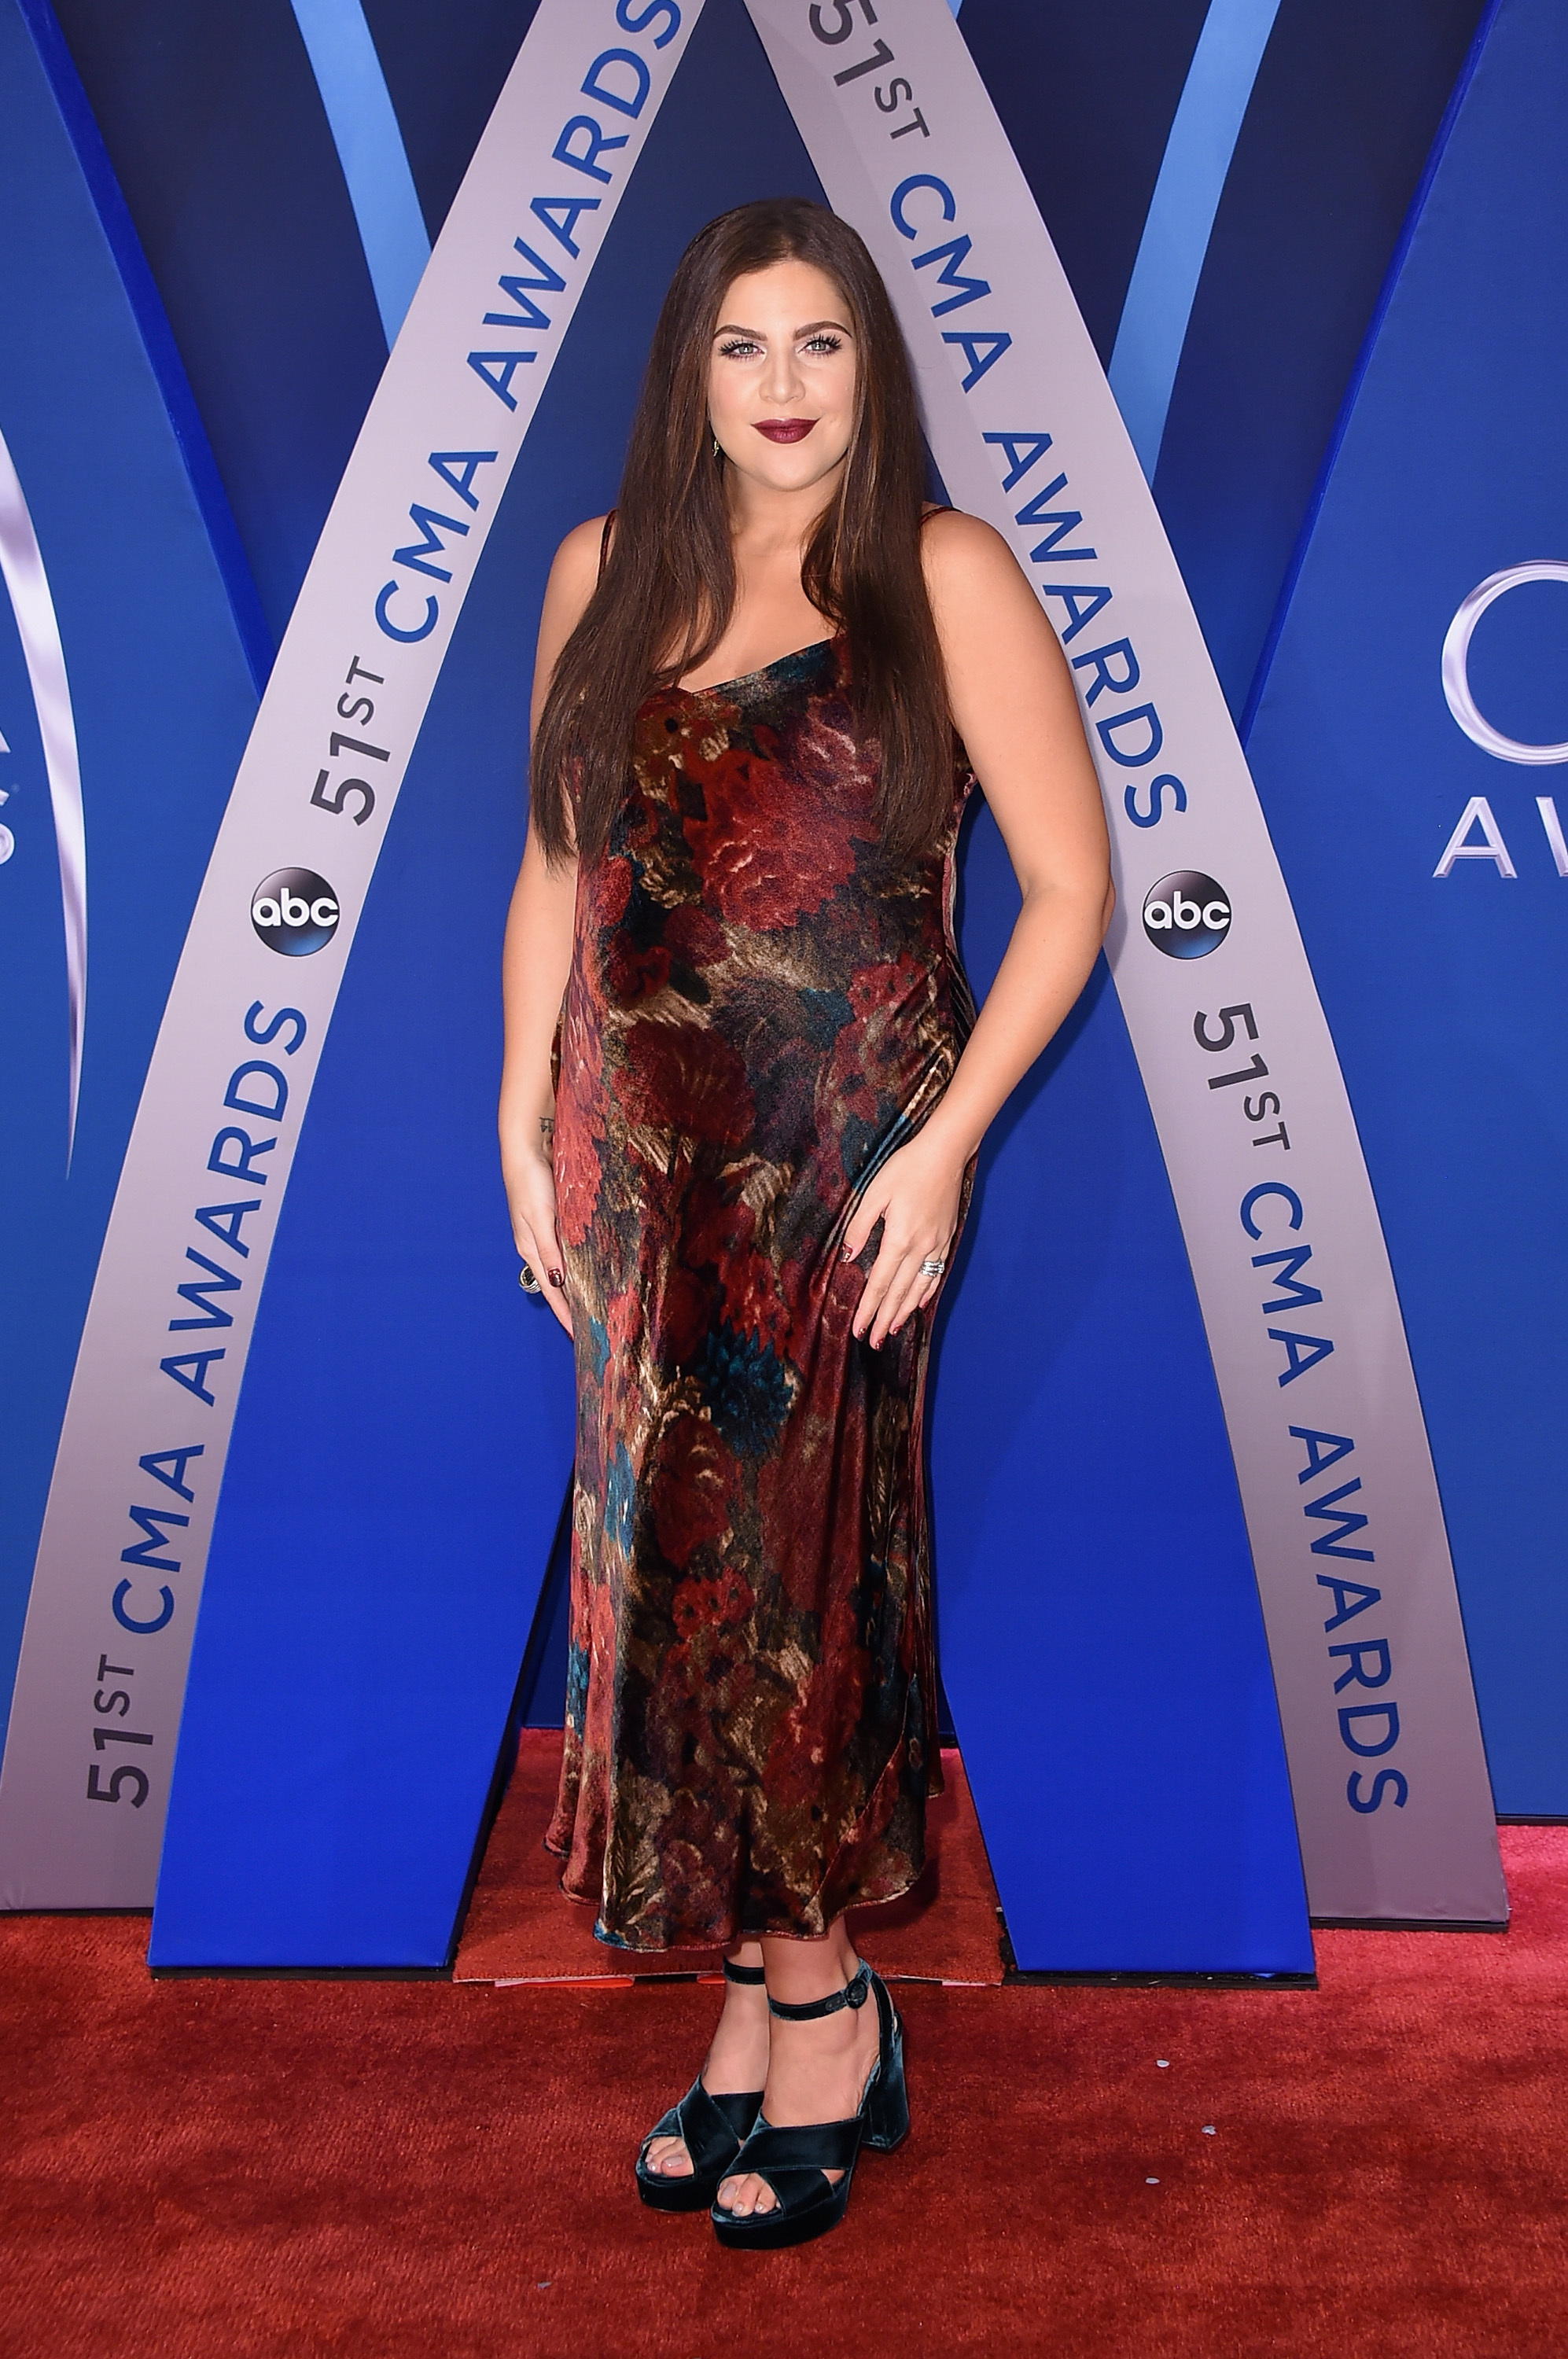 Hillary Scott attends the 51st Annual CMA Awards in Nashville on Nov. 8, 2017.